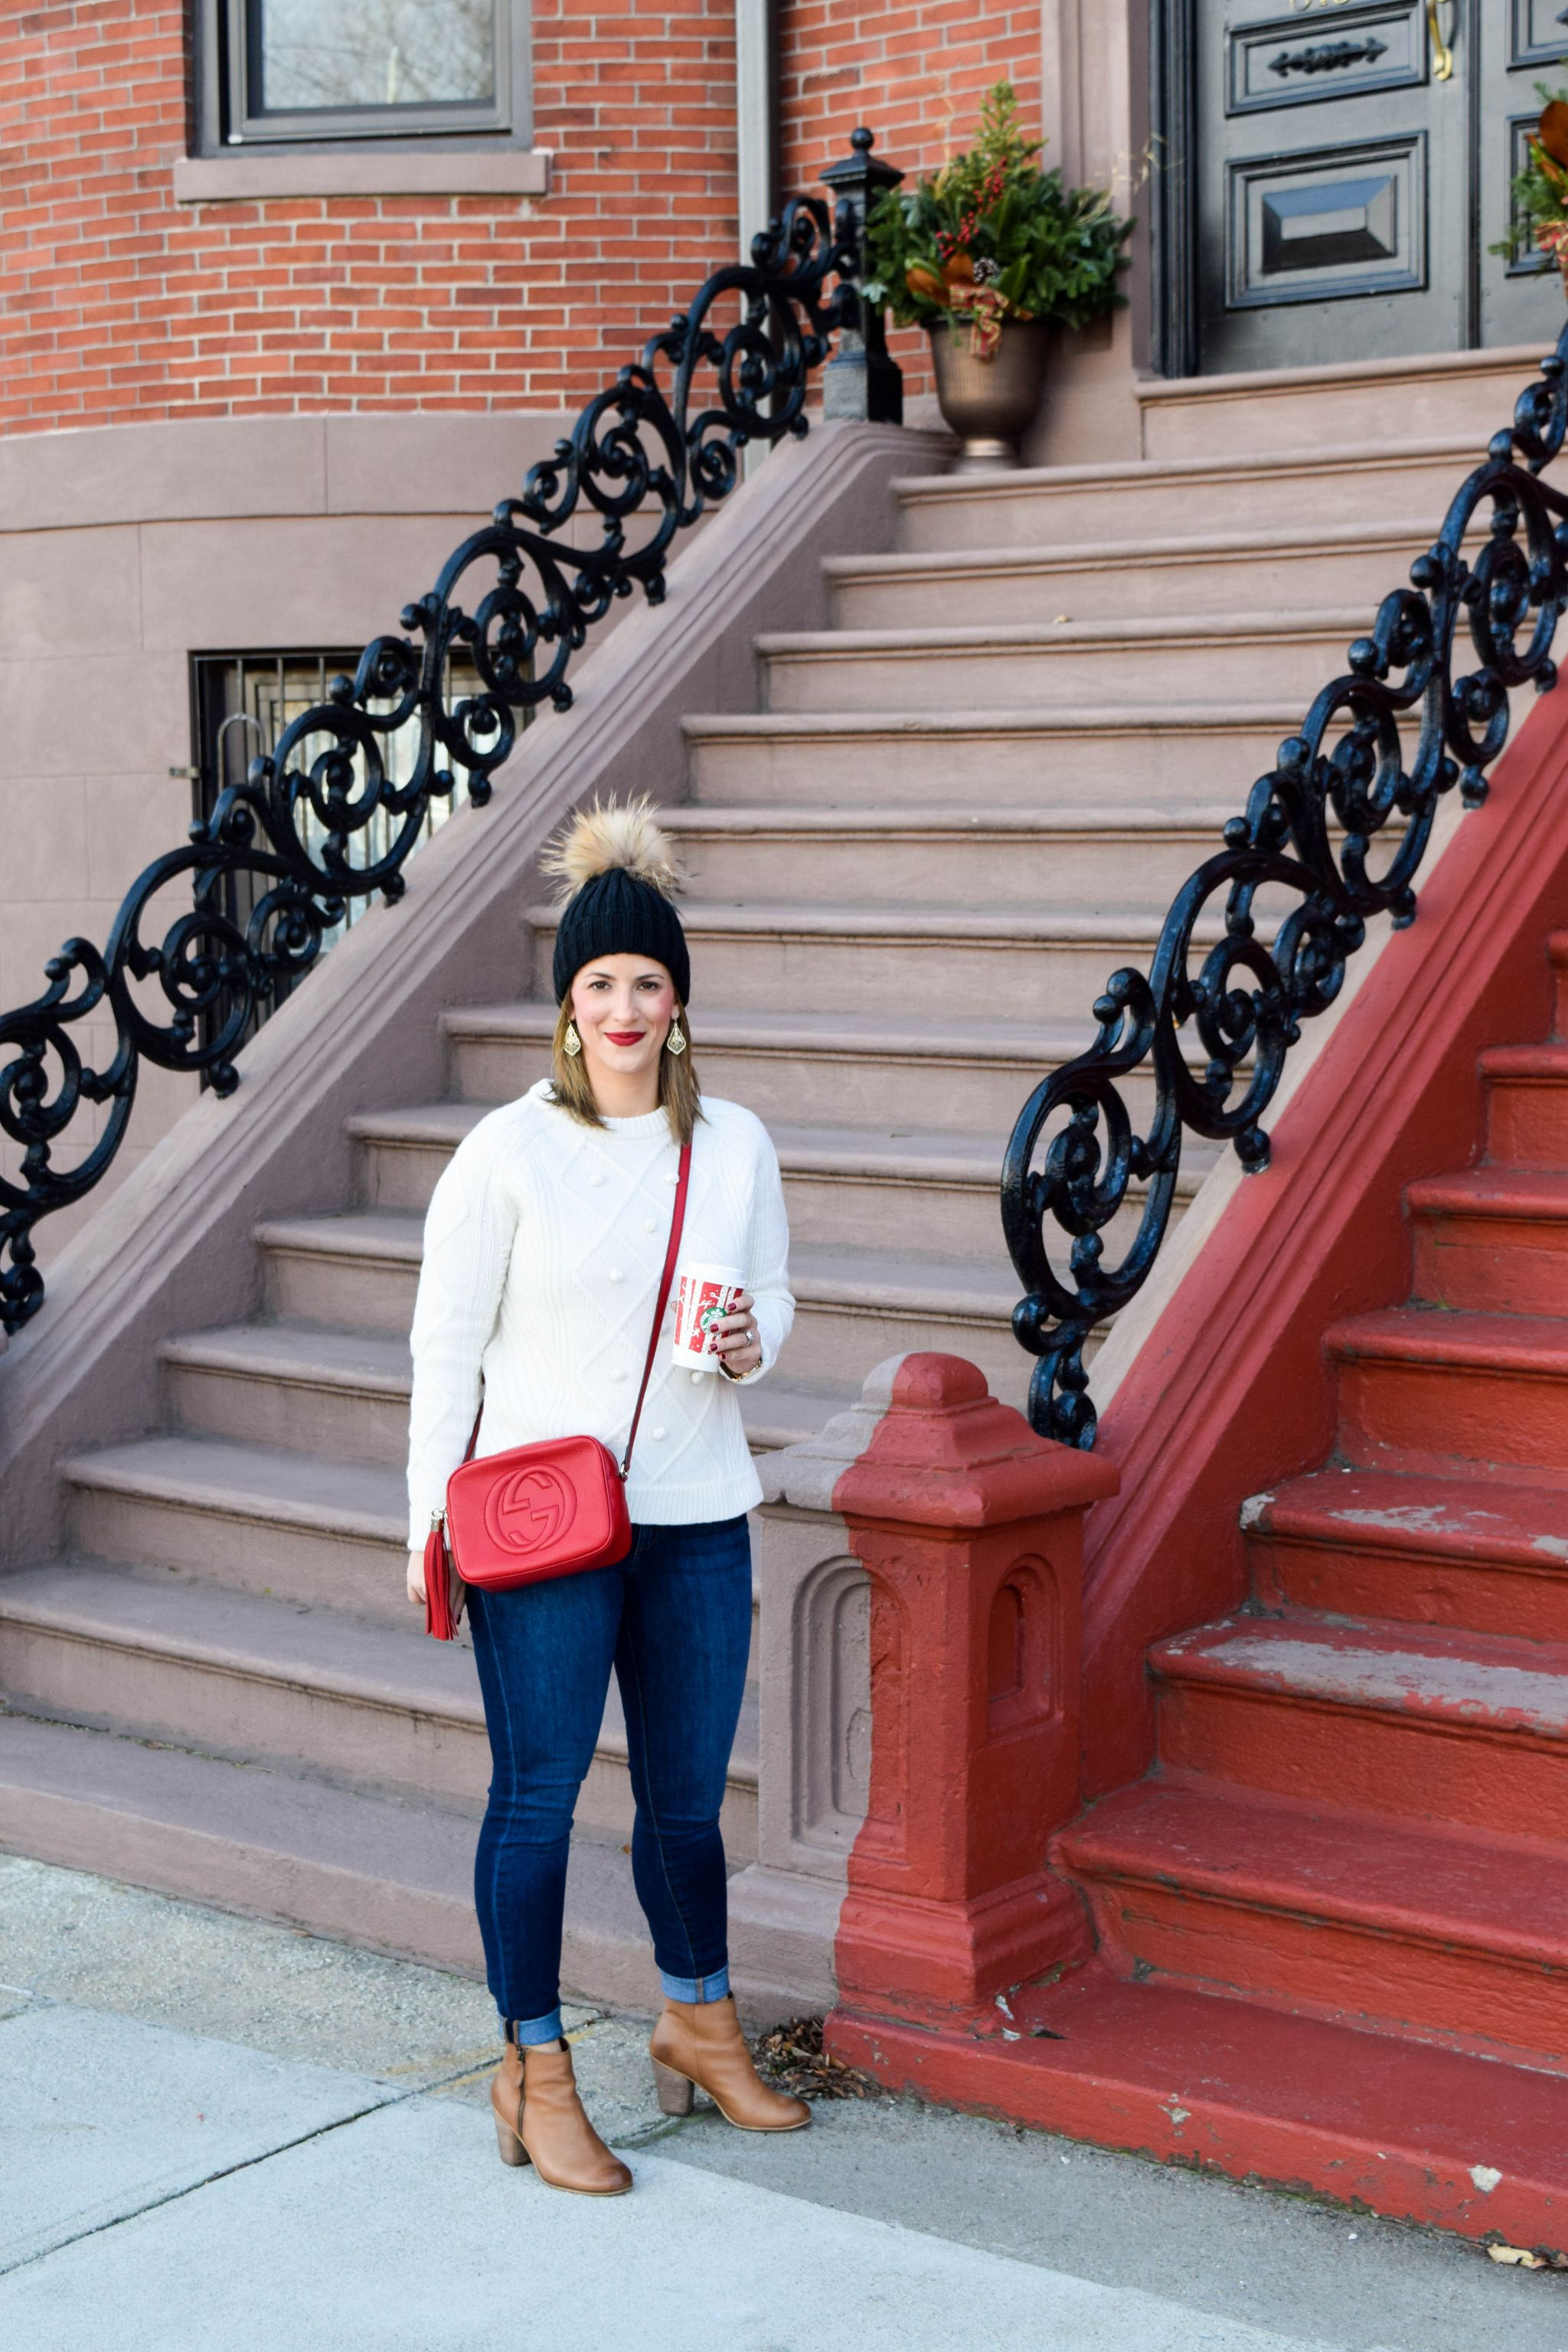 dfc924ad0694 Holiday Errands- J.Crew Pom Pom Sweater- Gucci Red Soho Disco Bag- Boston  Chic Party-3